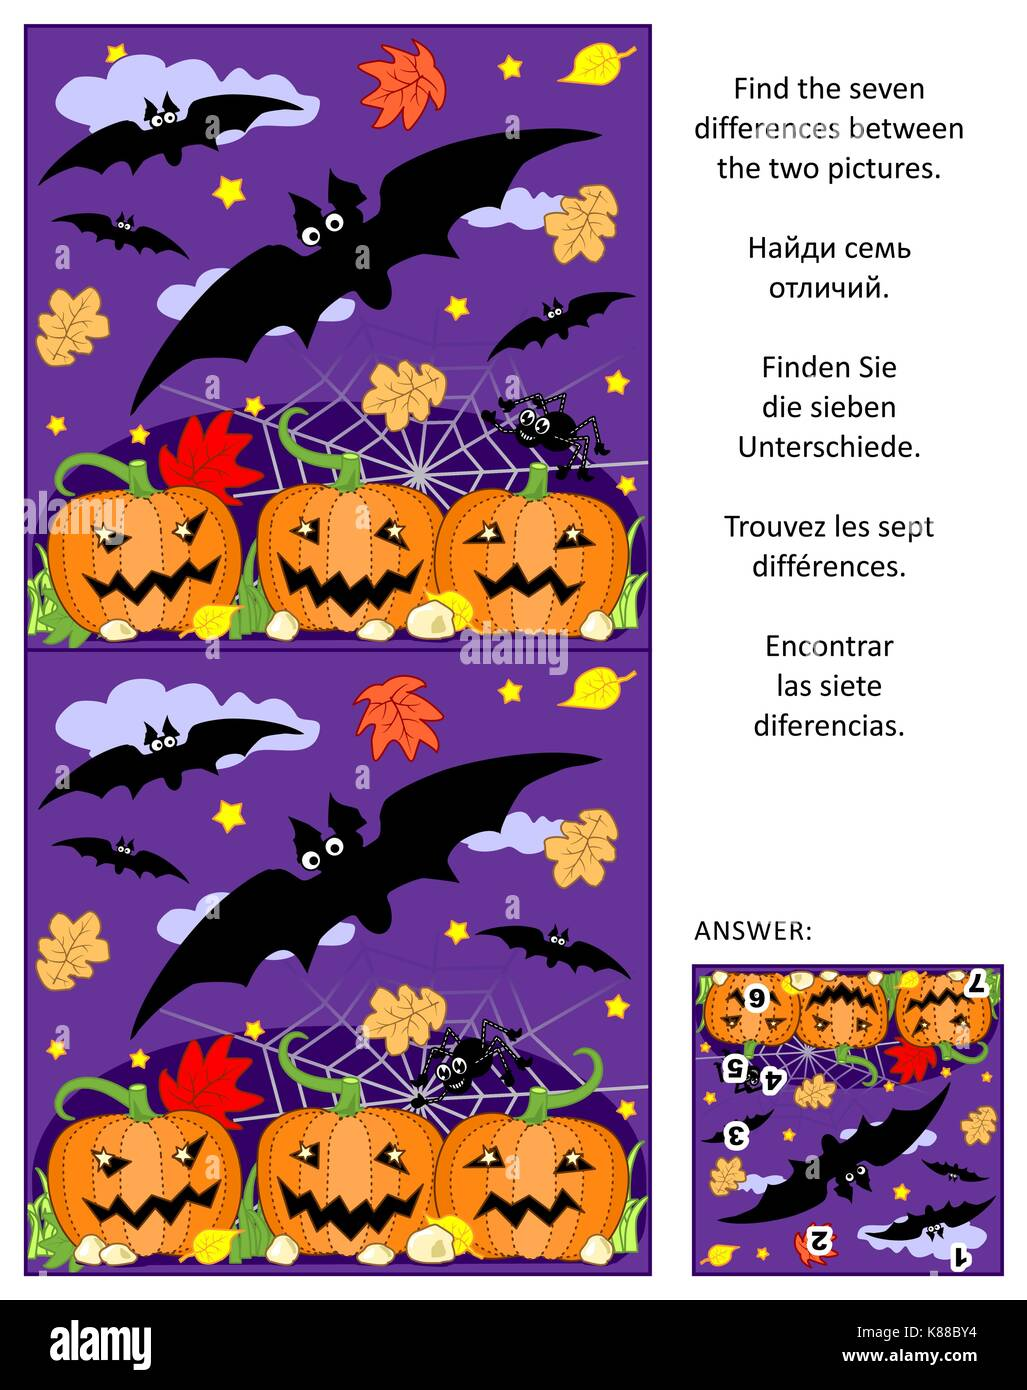 Halloween themed visual puzzle: Find the seven differences between the two pictures of flying bats, pumpkin field, - Stock Image